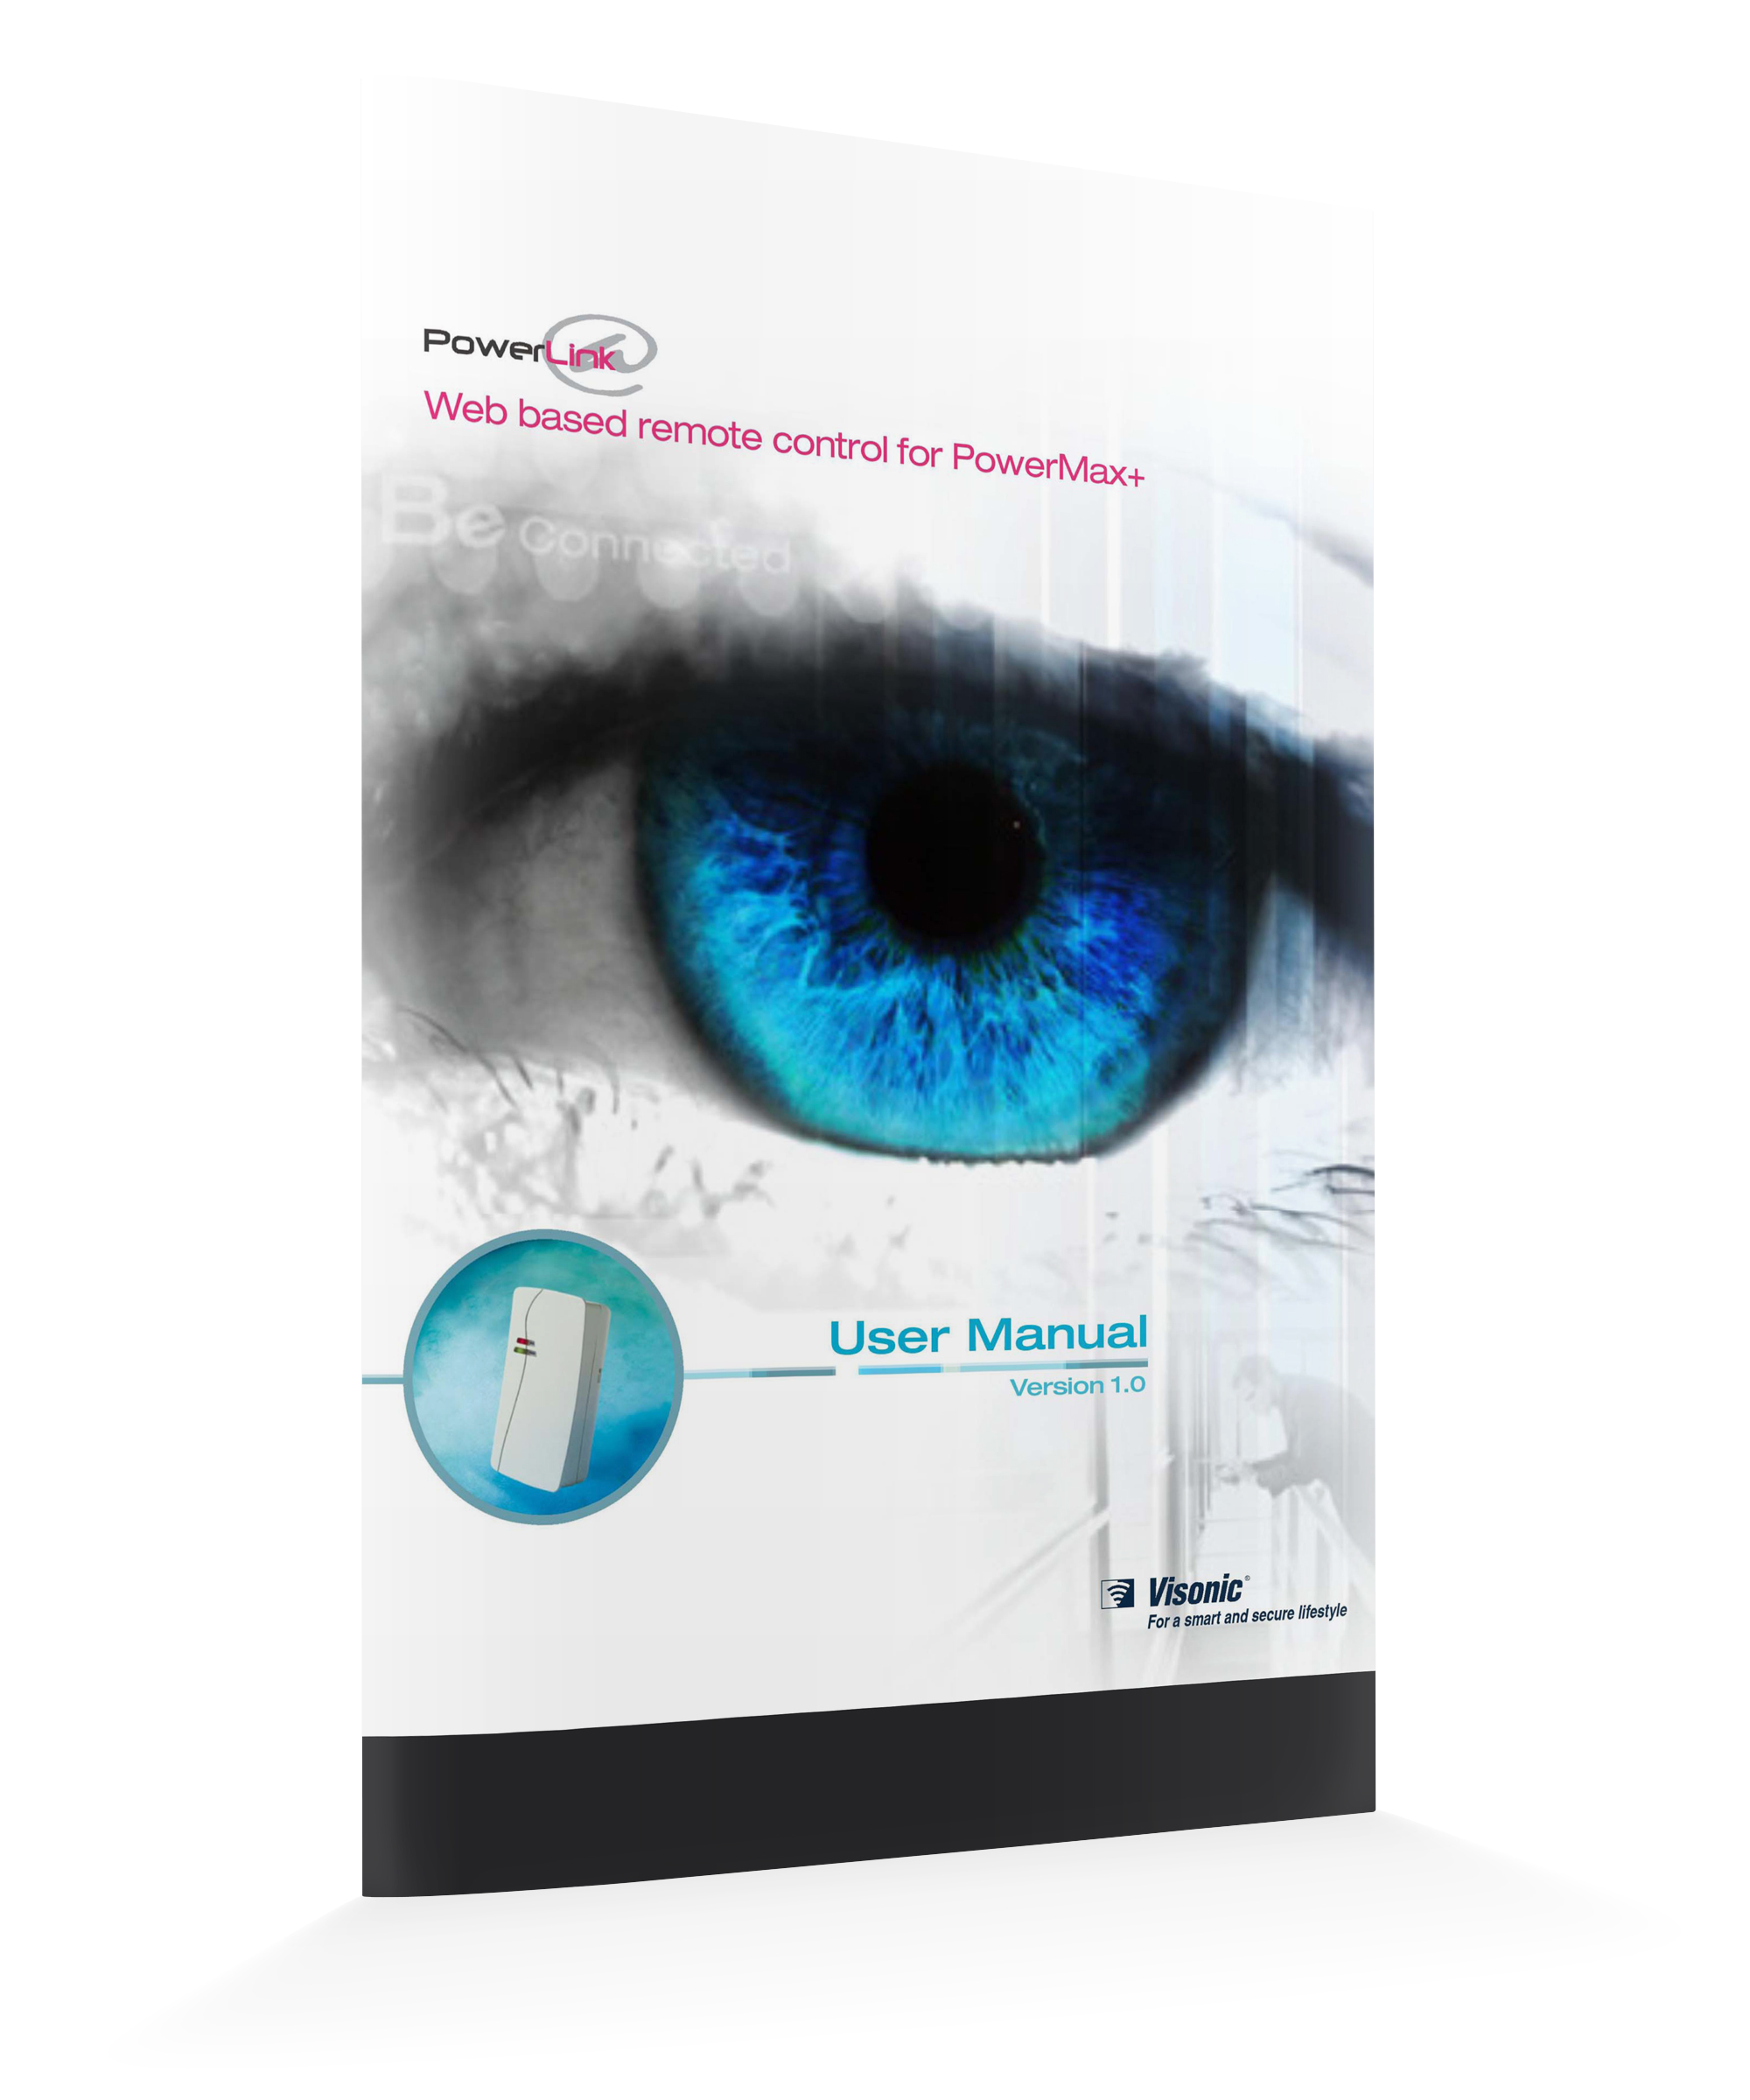 PowerLink User Manual – Both in Interactive and Print Applications